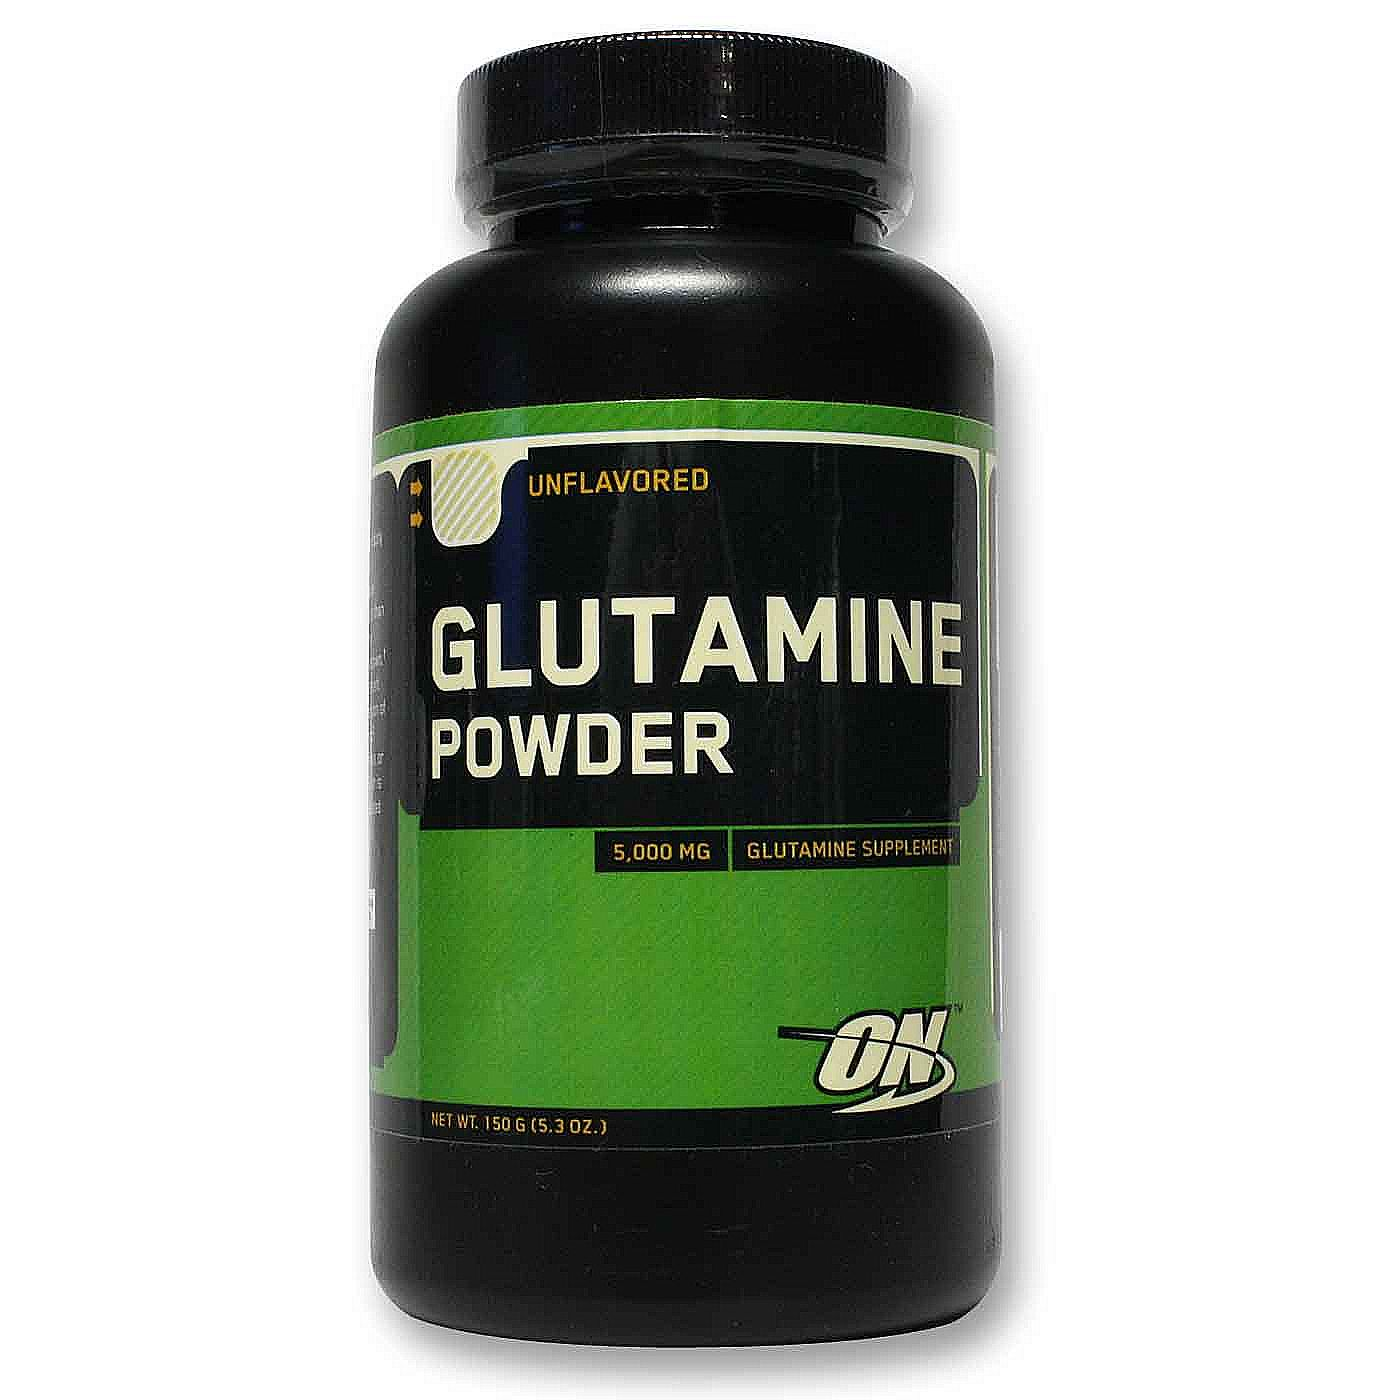 Where to get glutamine